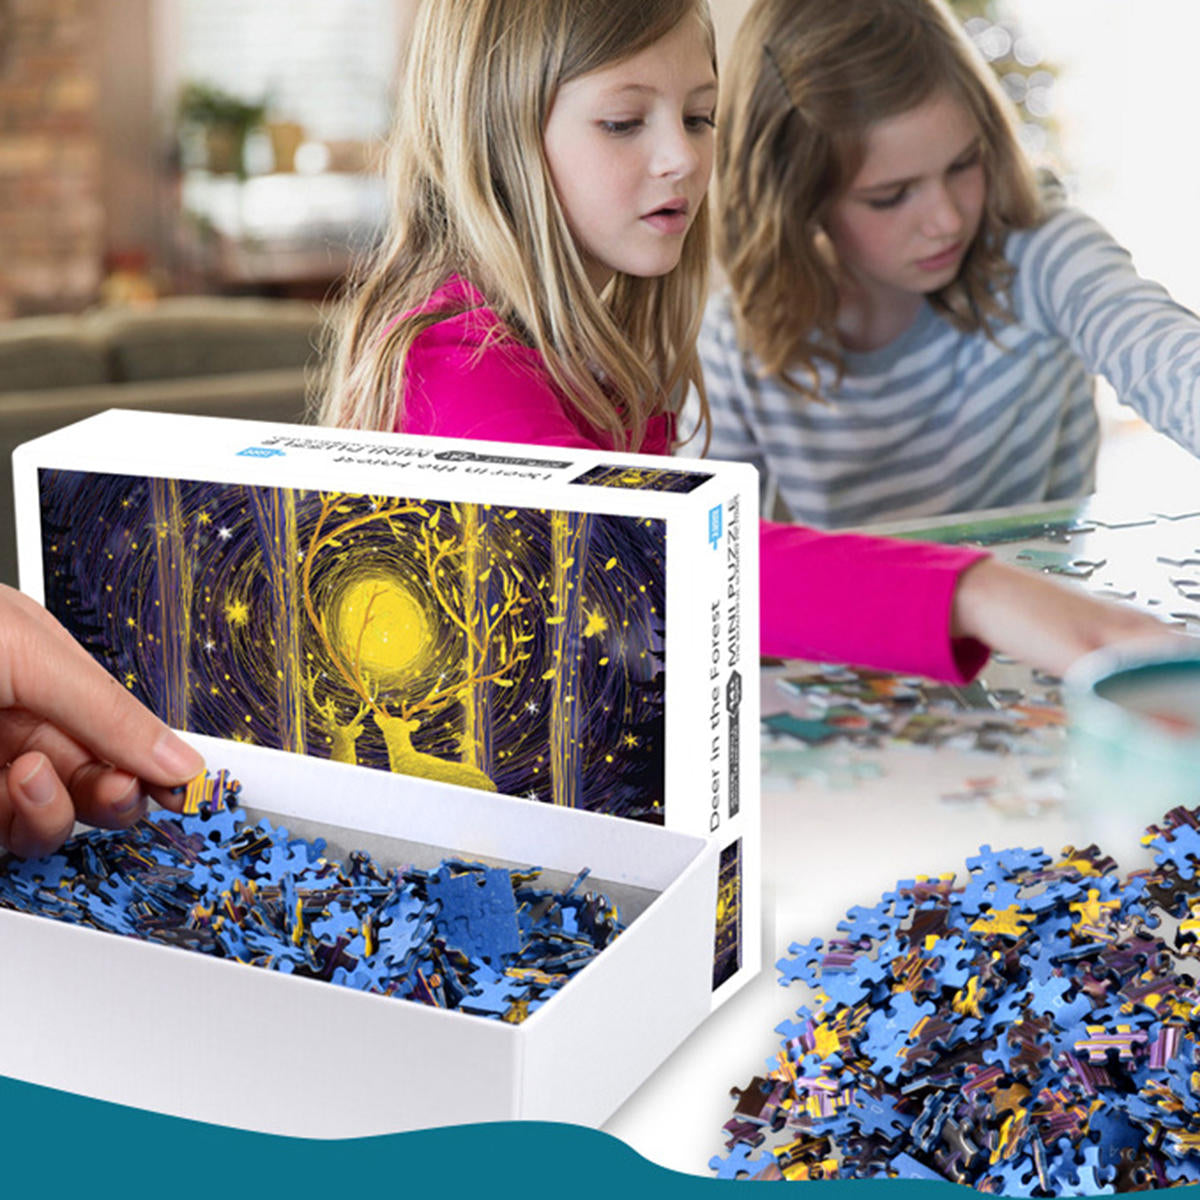 1000 Pieces Jigsaw Puzzles Educational And Entertainment Toys - LARNELEC